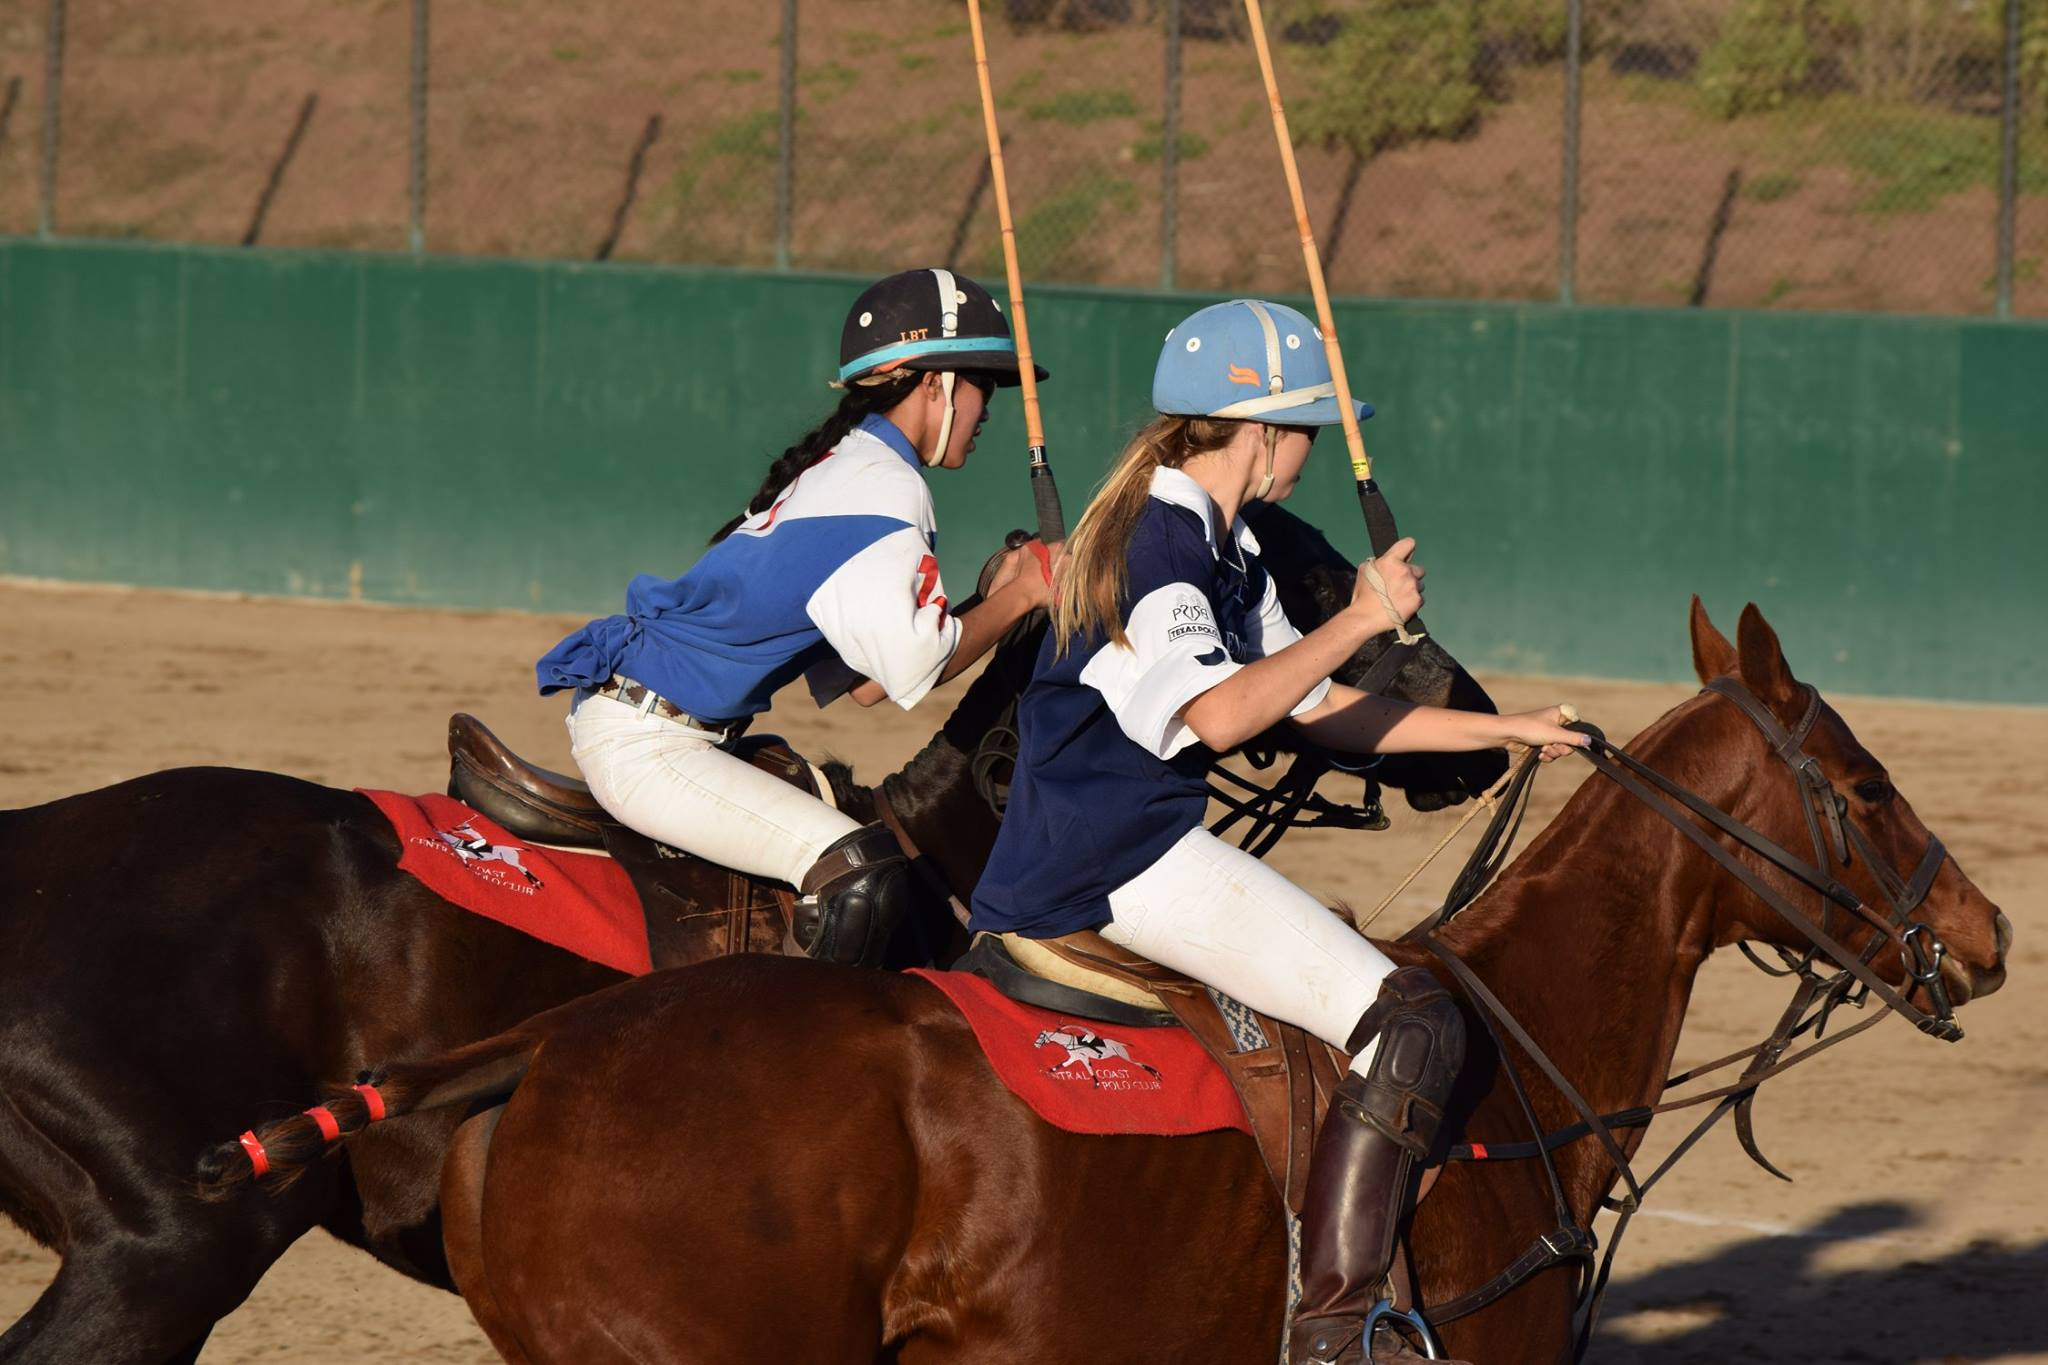 Donate Today! - The success of Santa Barbara Polo Training Center would not be possible without your help. Thank you for your continued support.